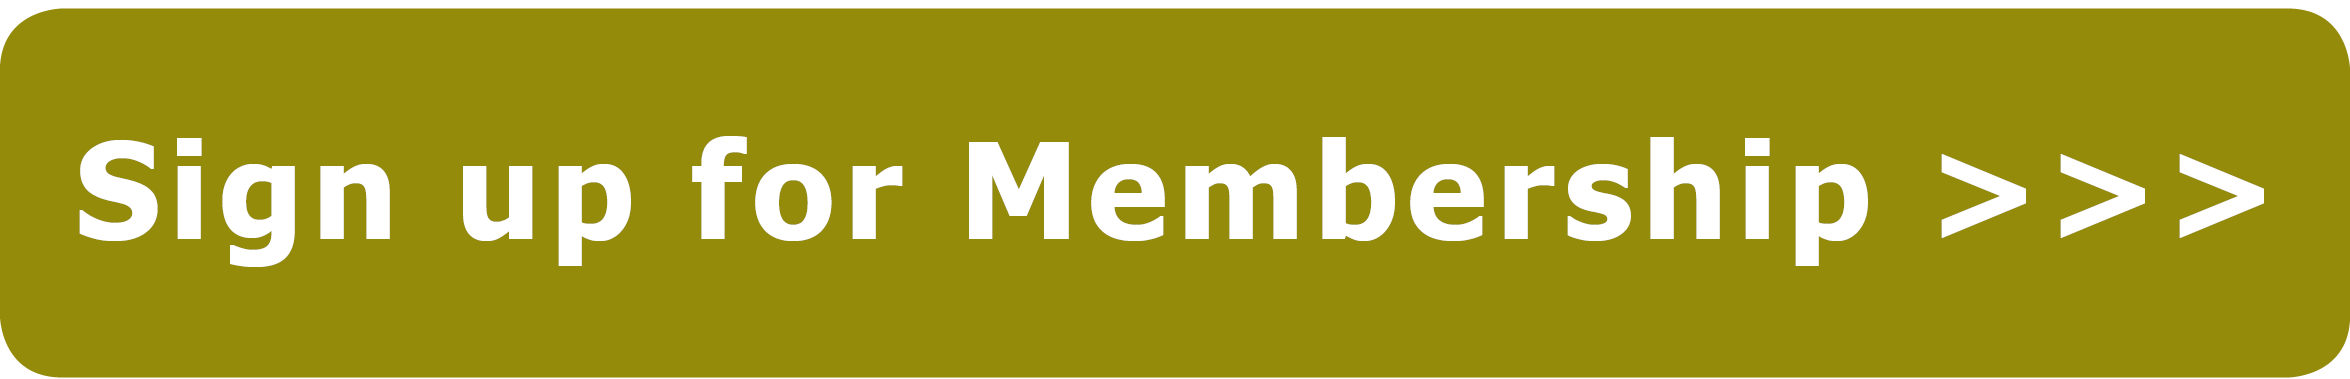 Button: Sign up for Membership